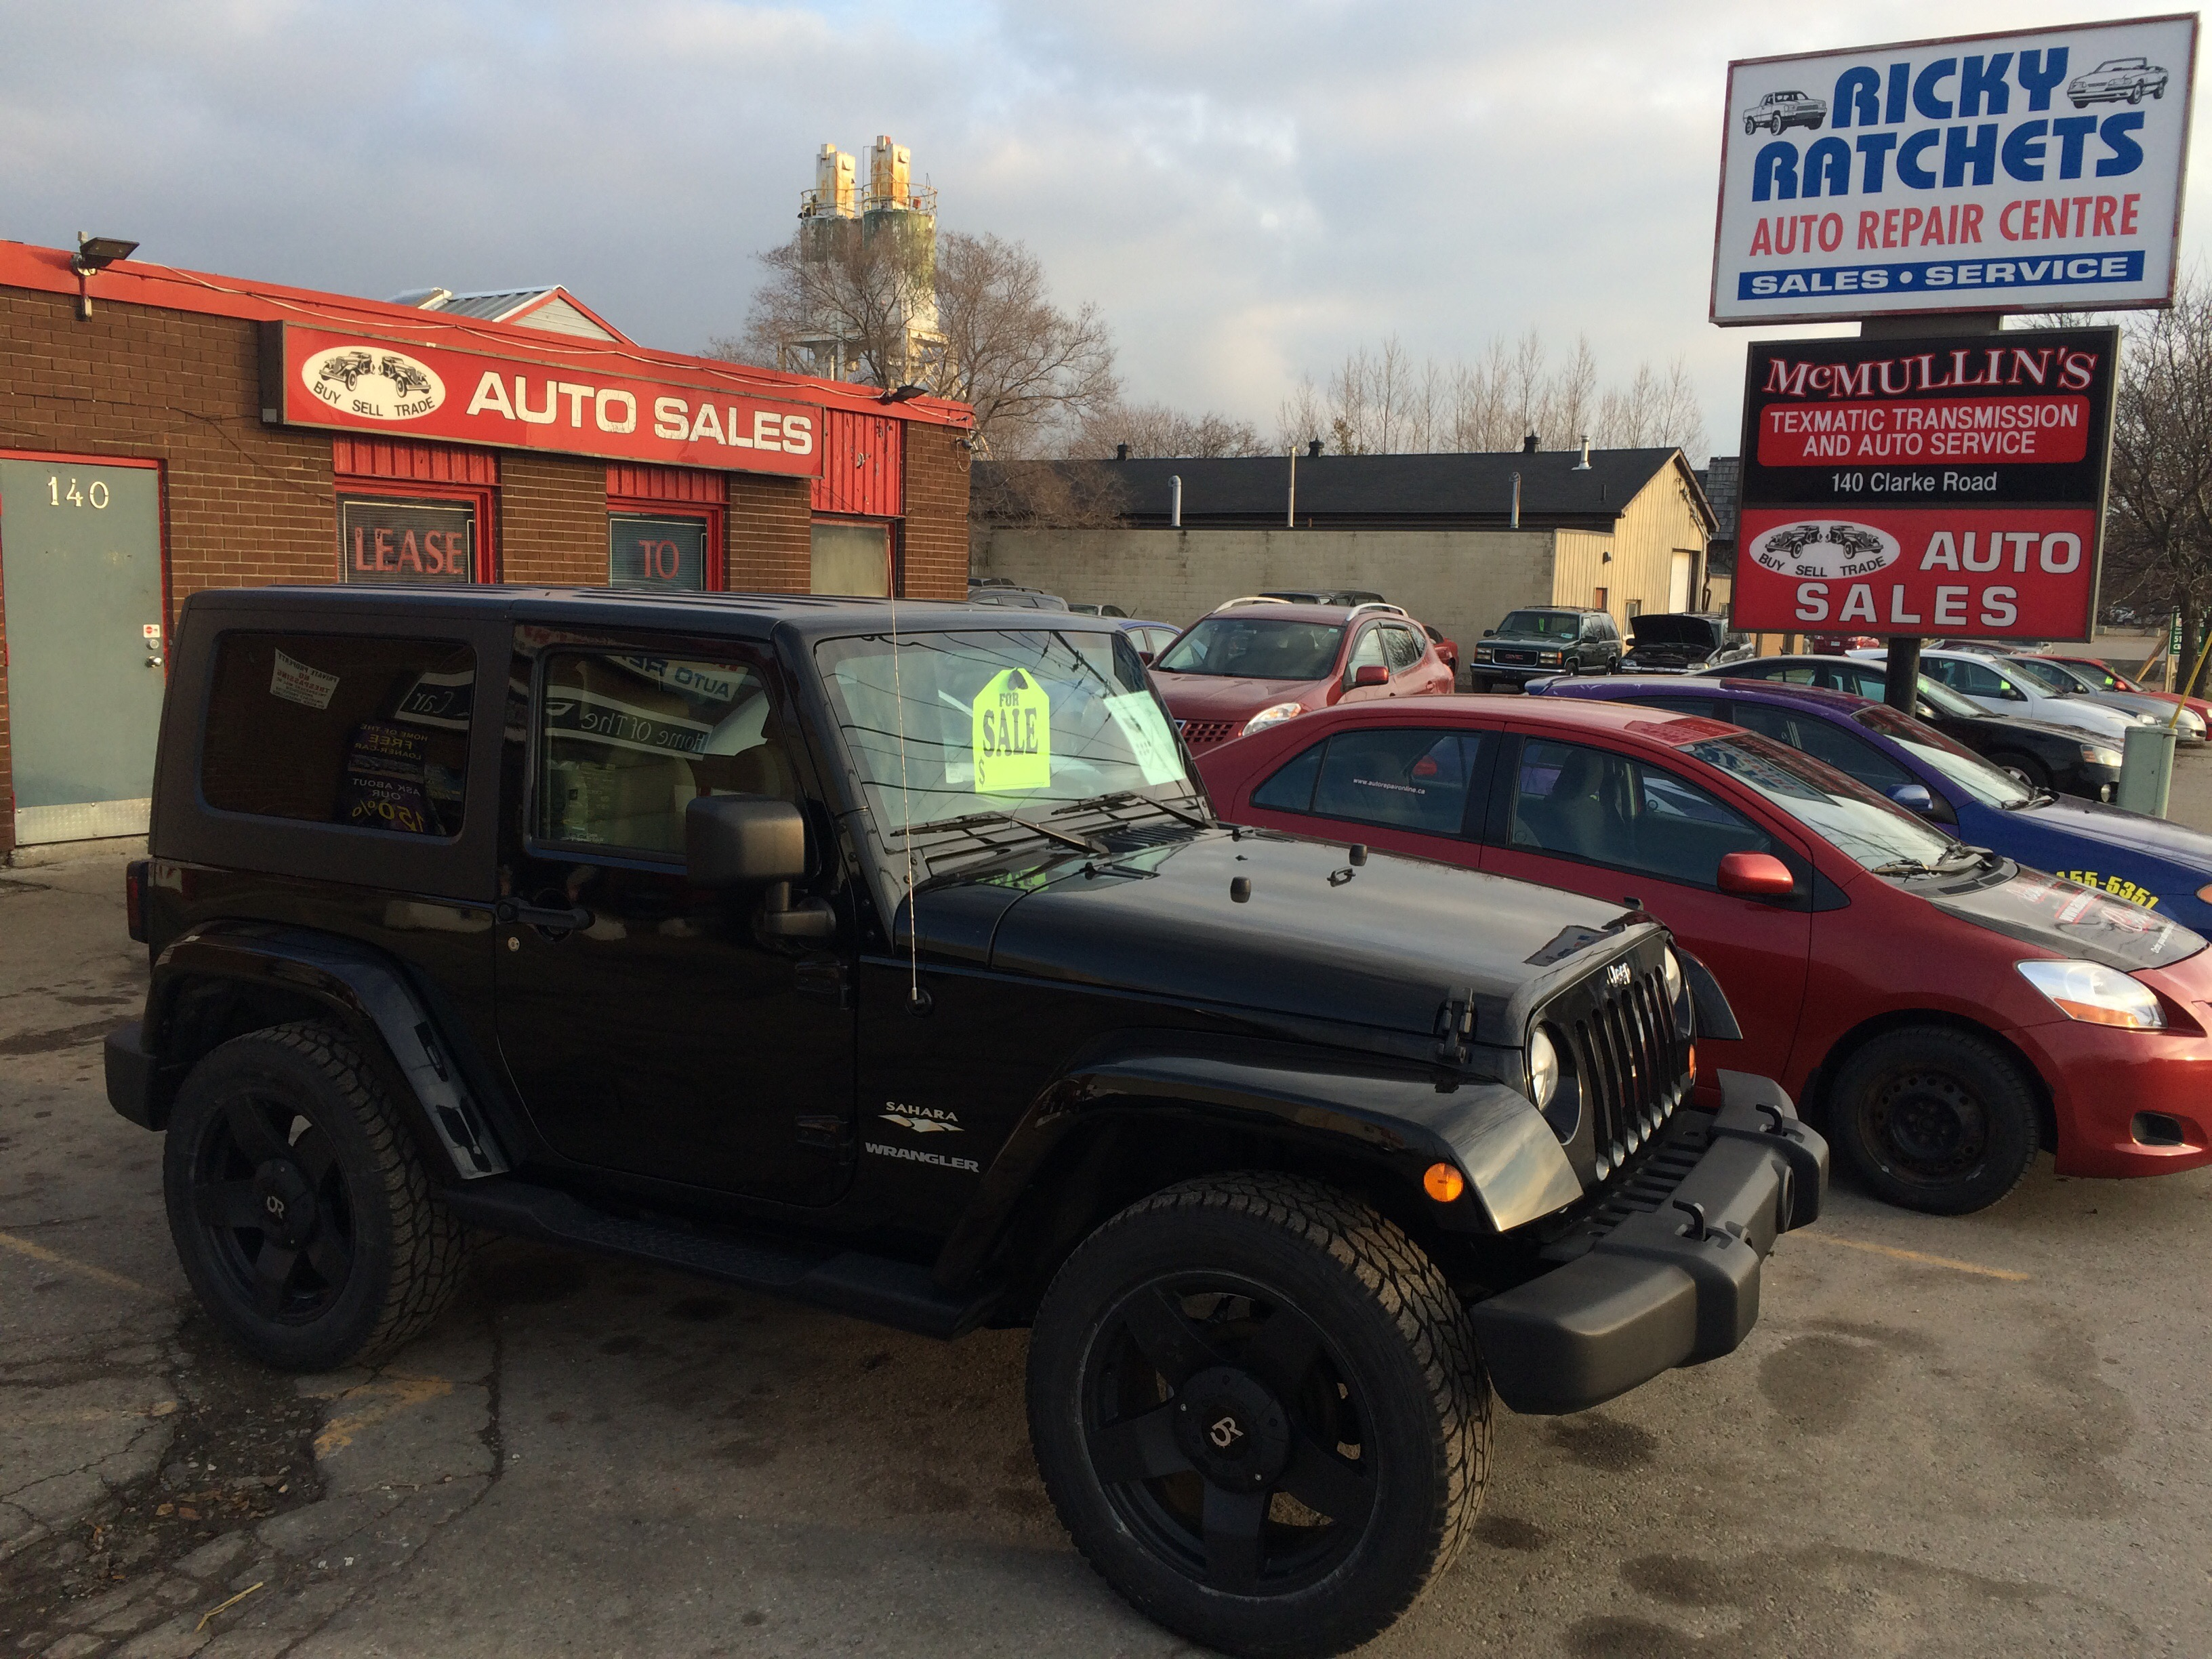 London Ontario Auto Sales